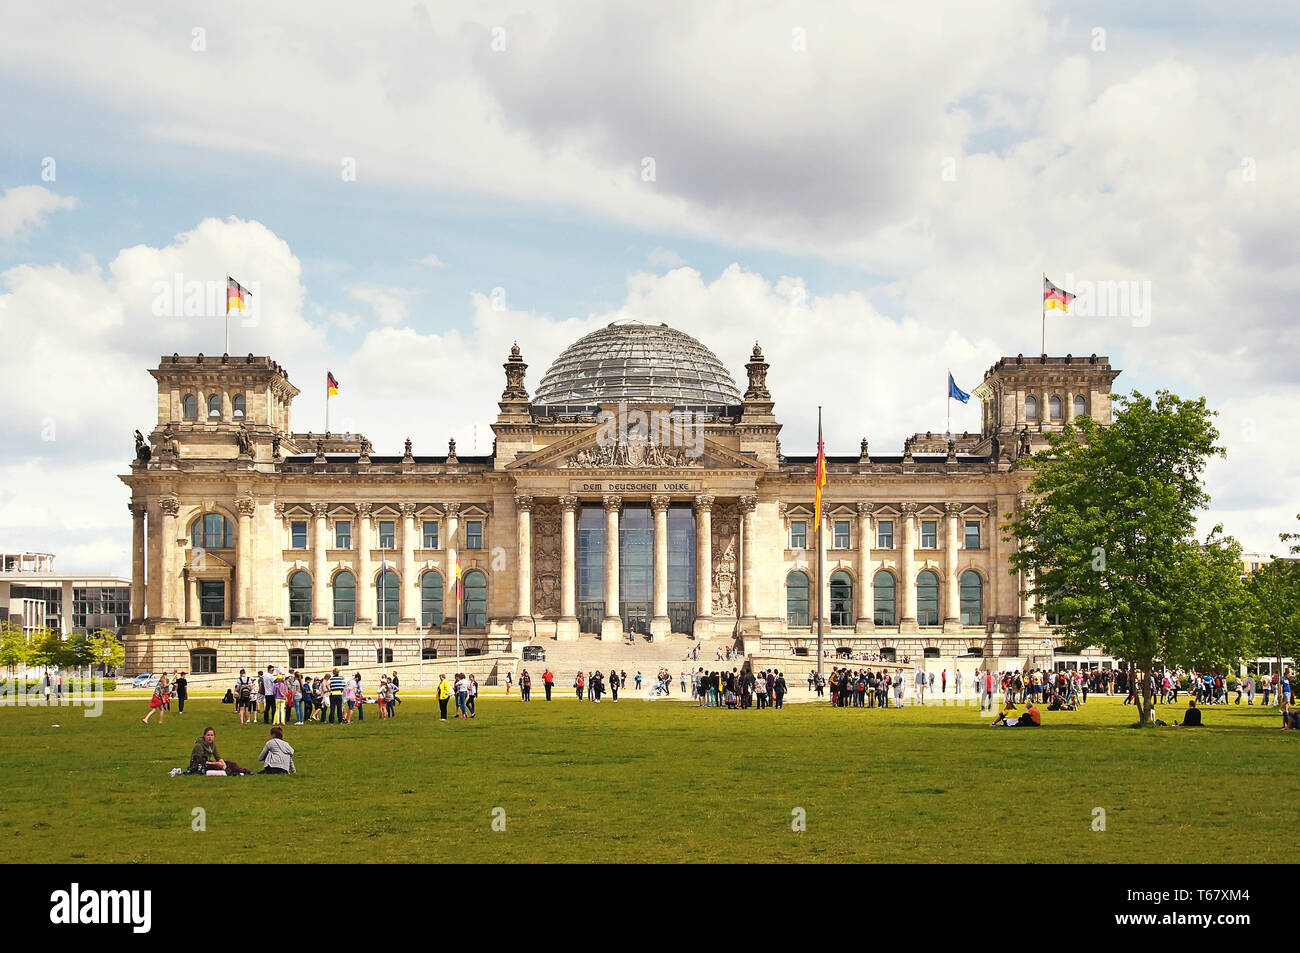 The Reichstag building in Berlin, Germany - Stock Image